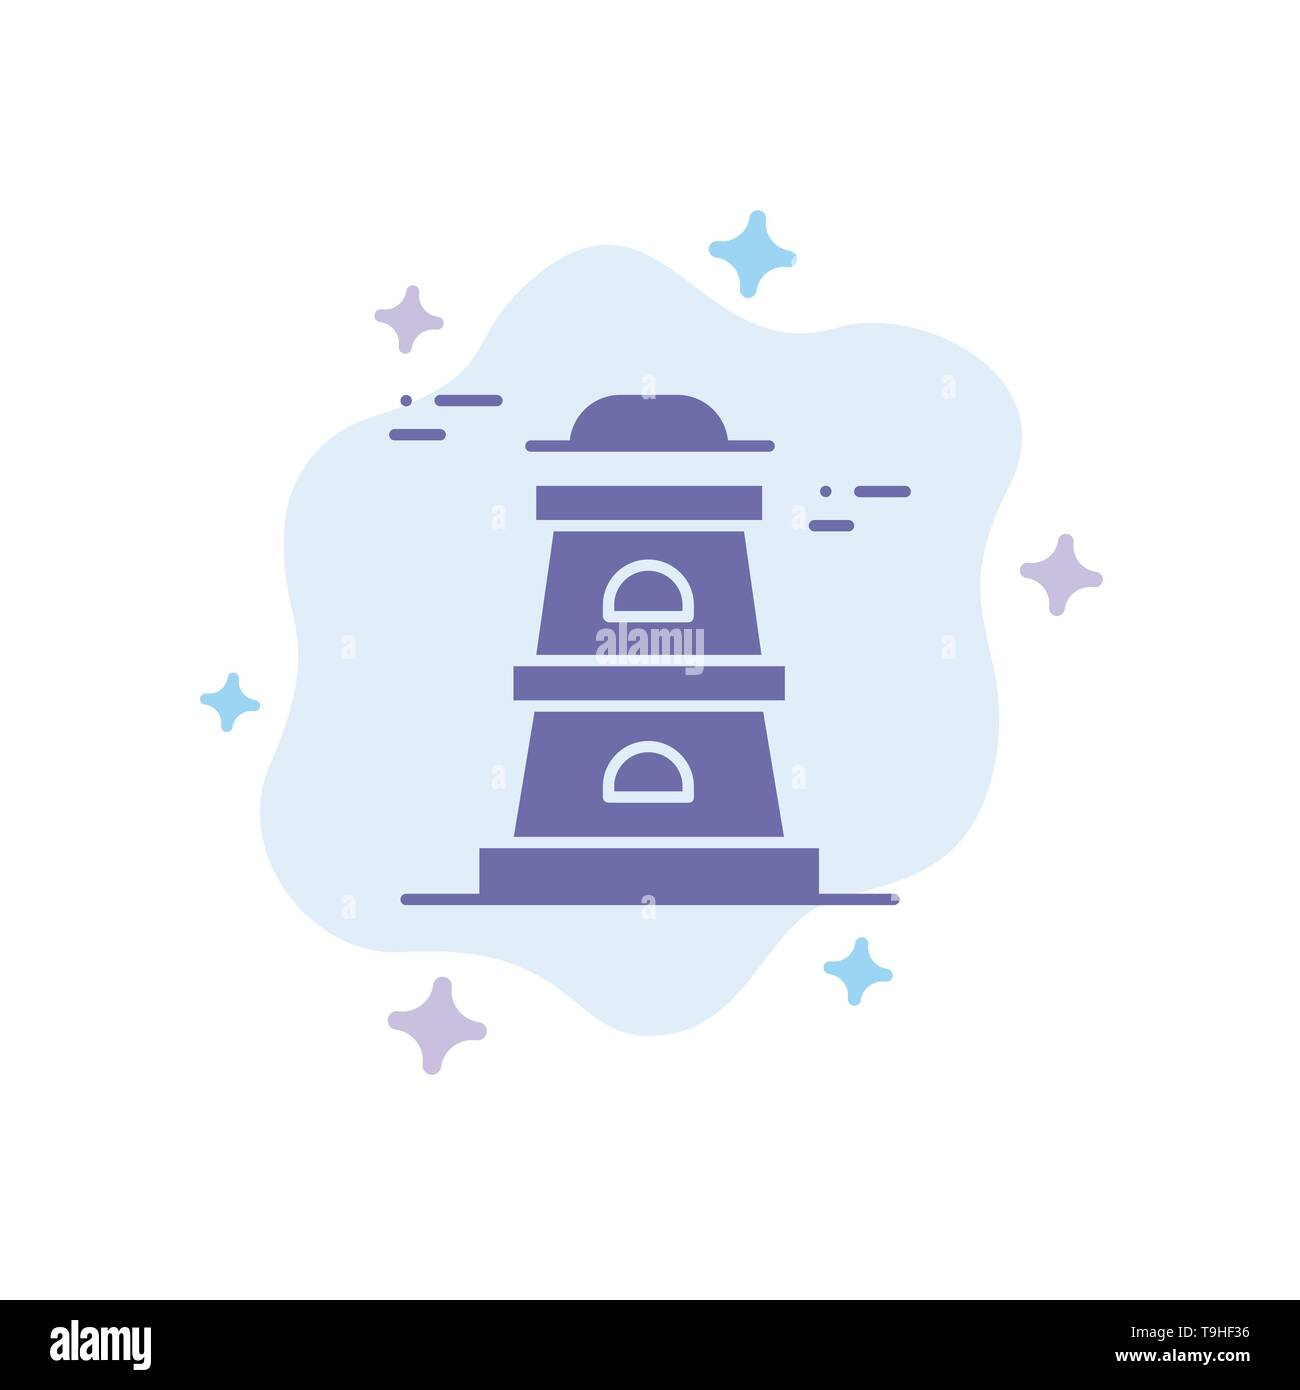 Observatory, Tower, Watchtower Blue Icon on Abstract Cloud Background - Stock Vector